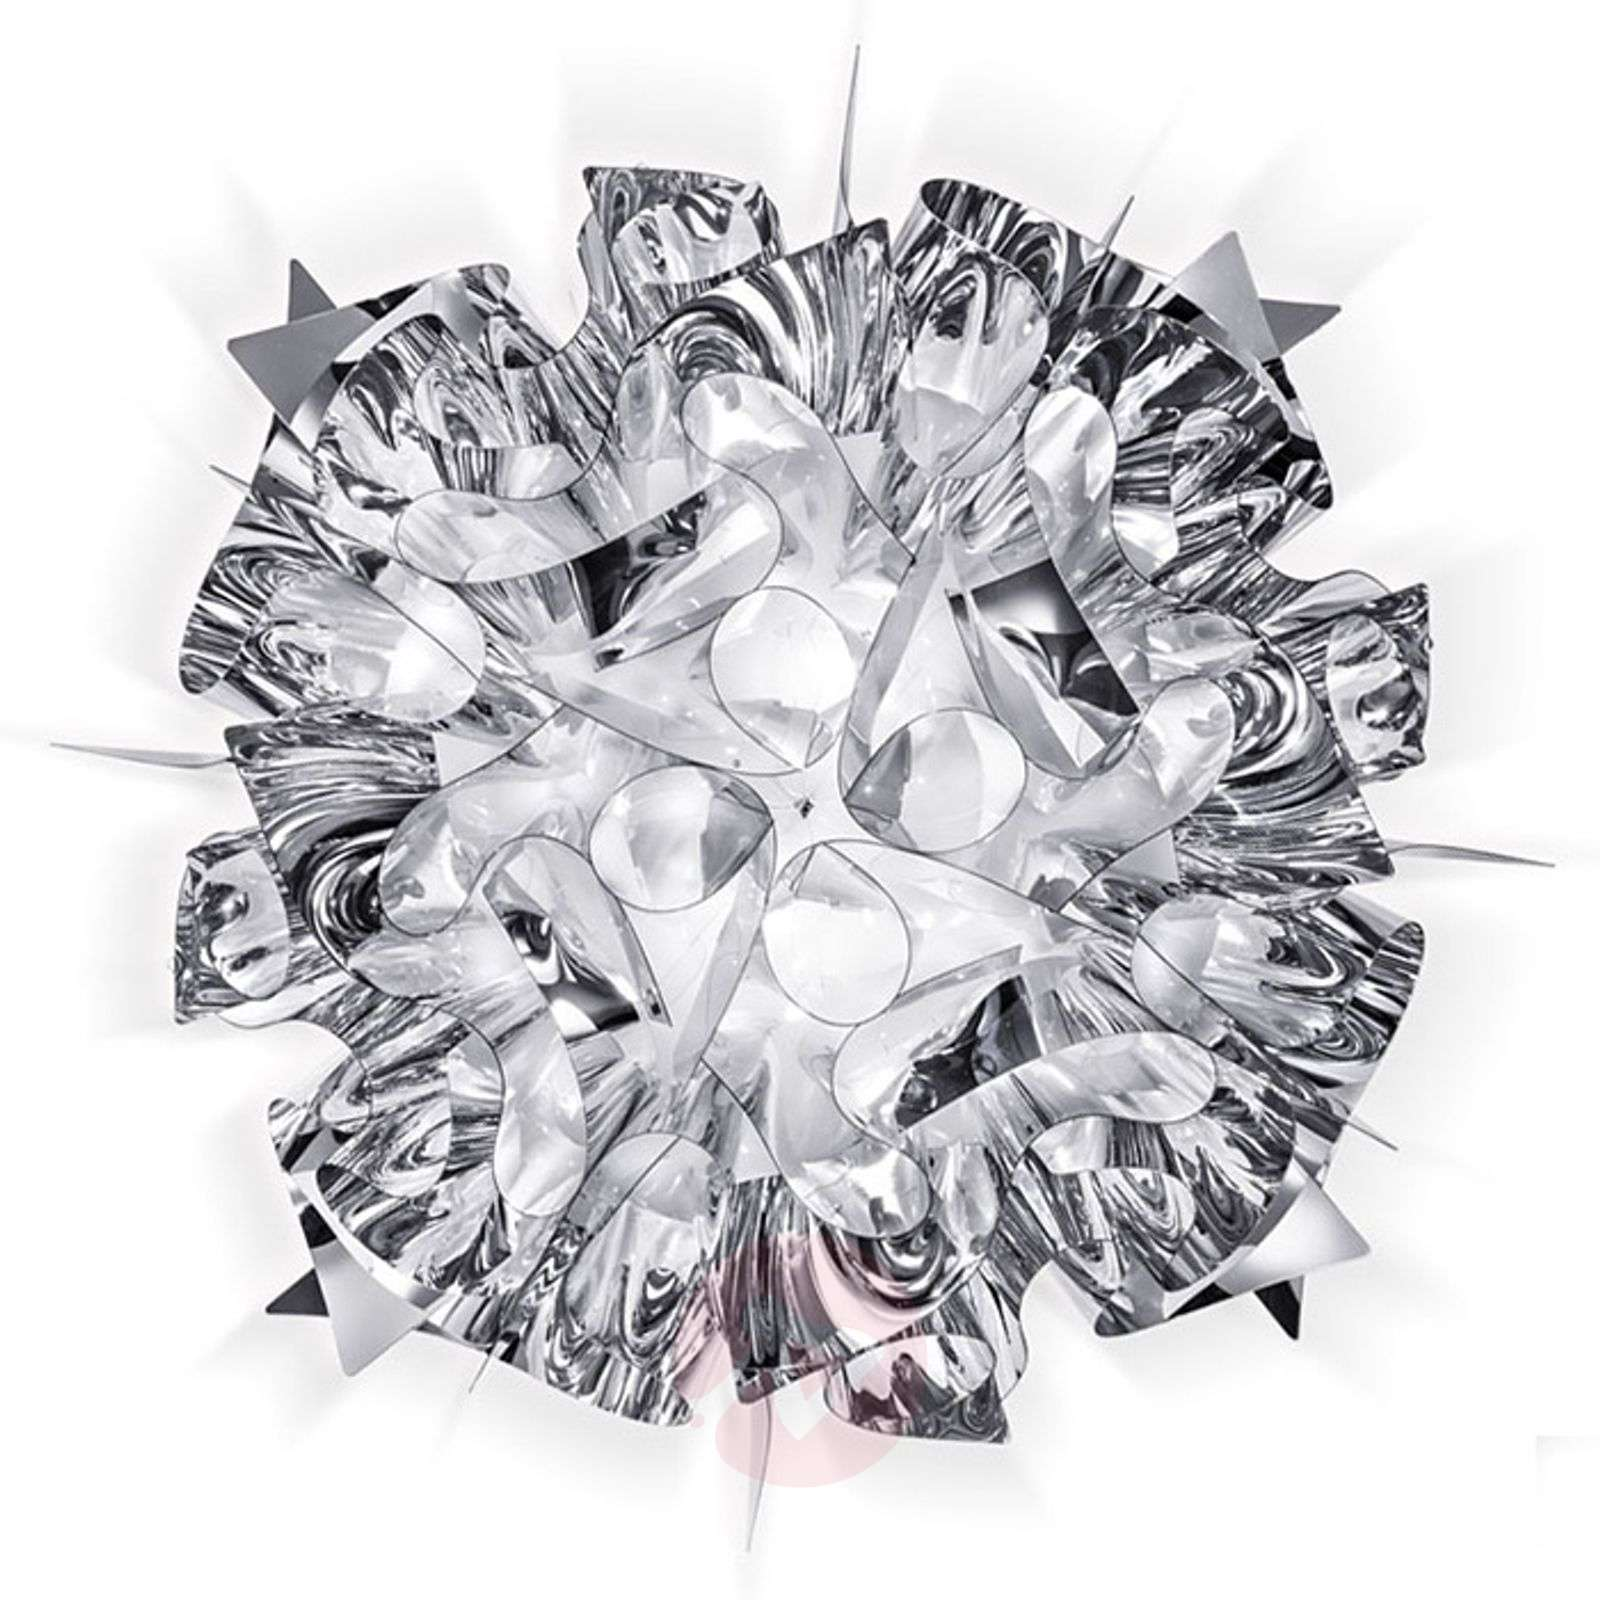 Veli designer ceiling light in silver, 53 cm-8503213-01